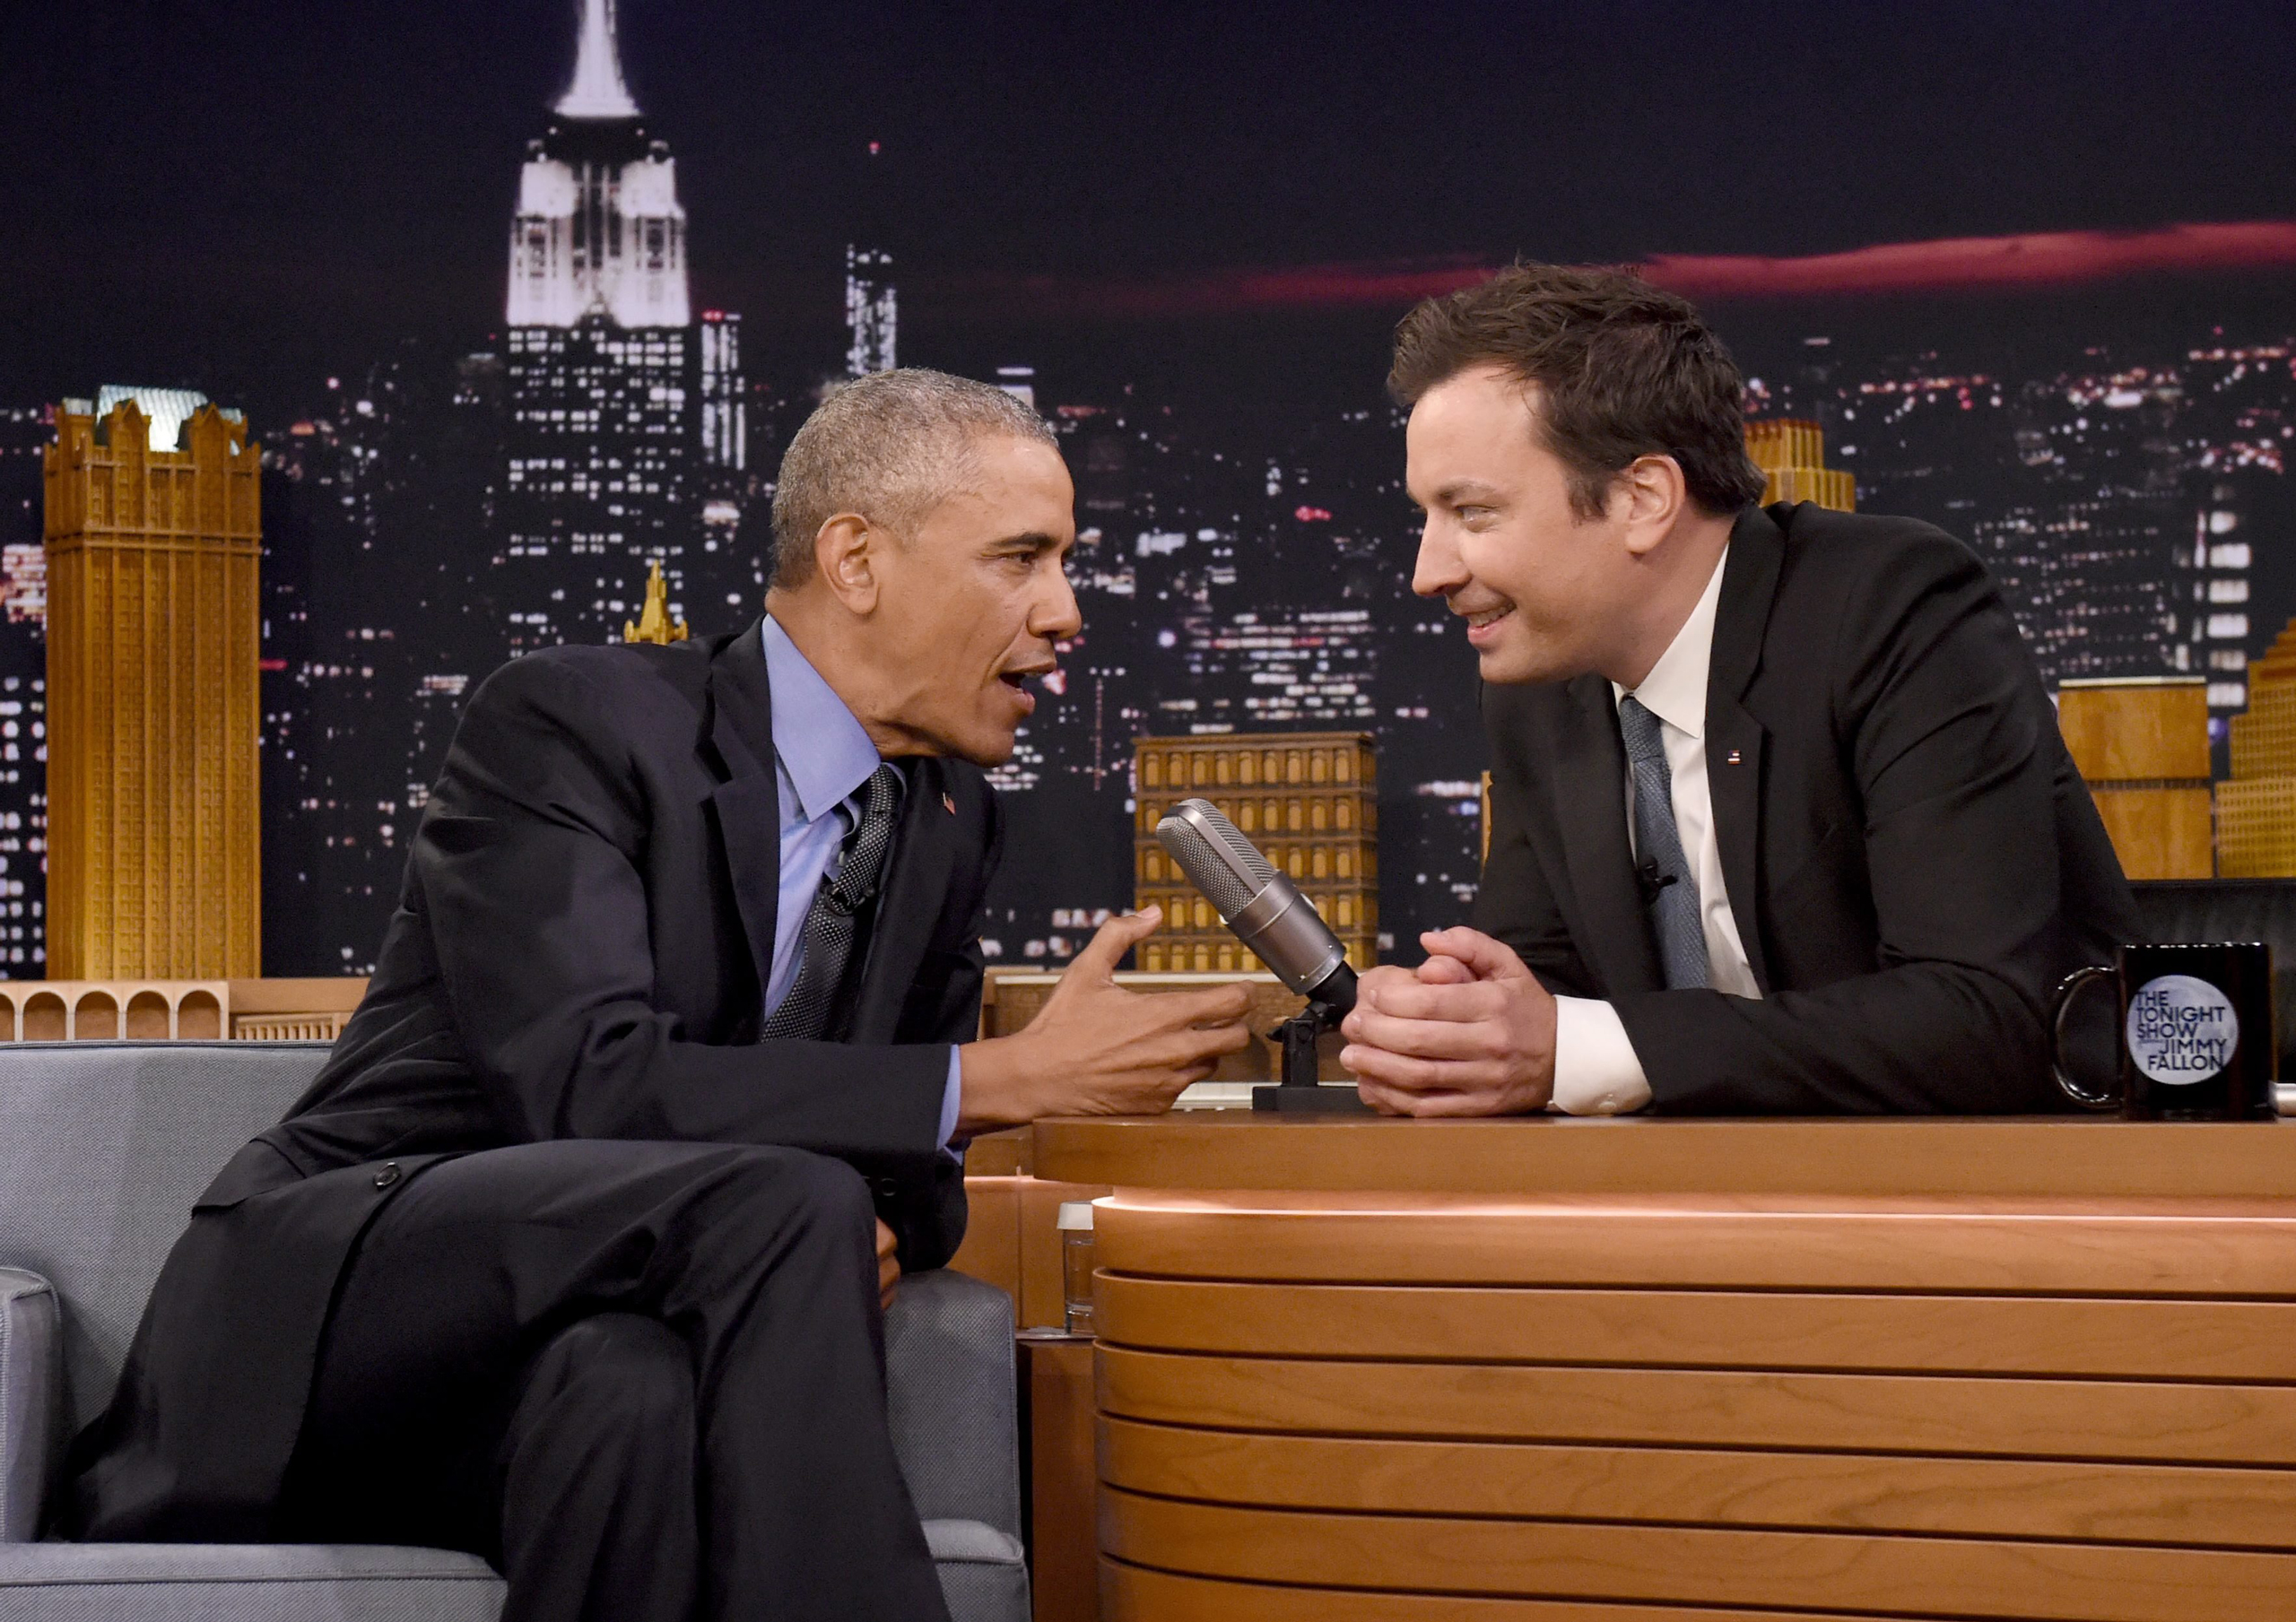 President Barack Obama speaks with Jimmy Fallon on the set of the Tonight Show at NBC Studios in New York on June 8, 2016.